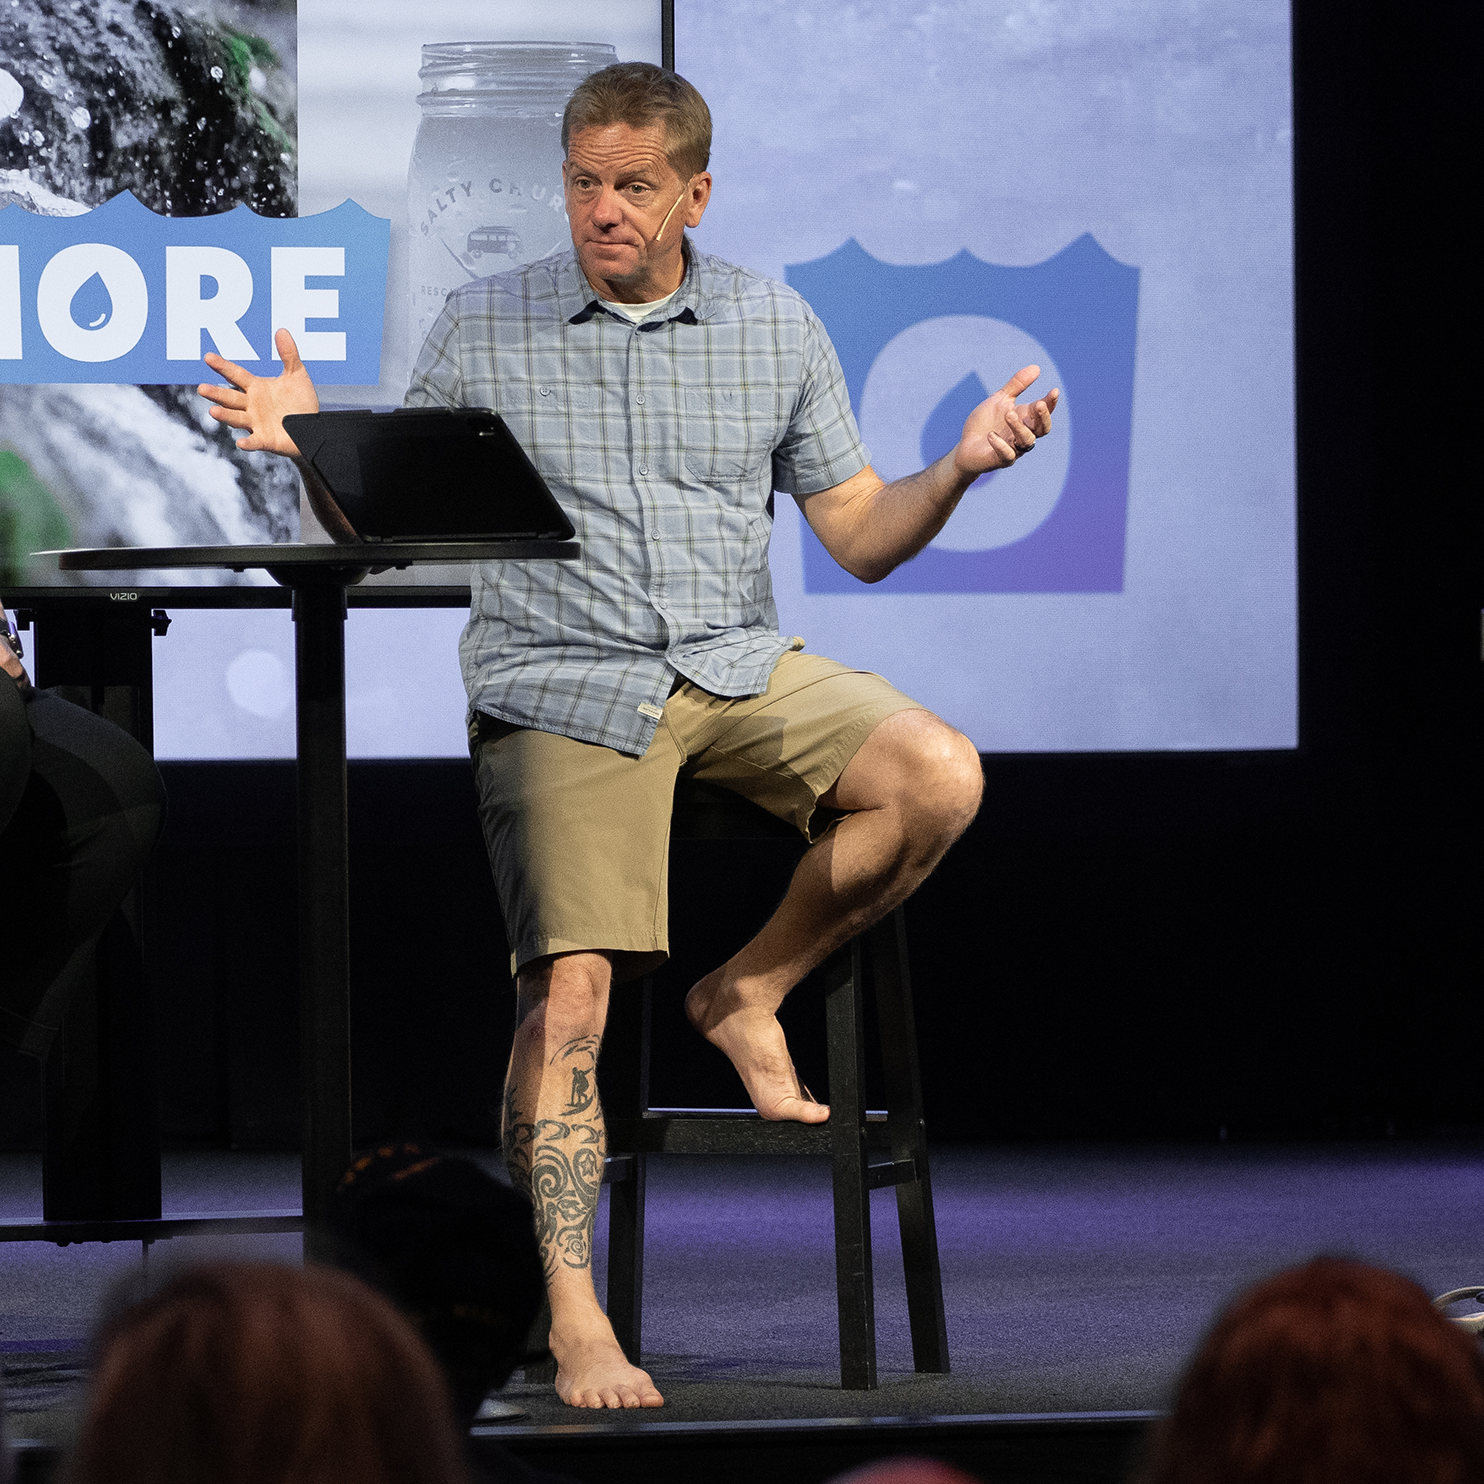 Man speaking from a stage sitting on a stool without shoes on.